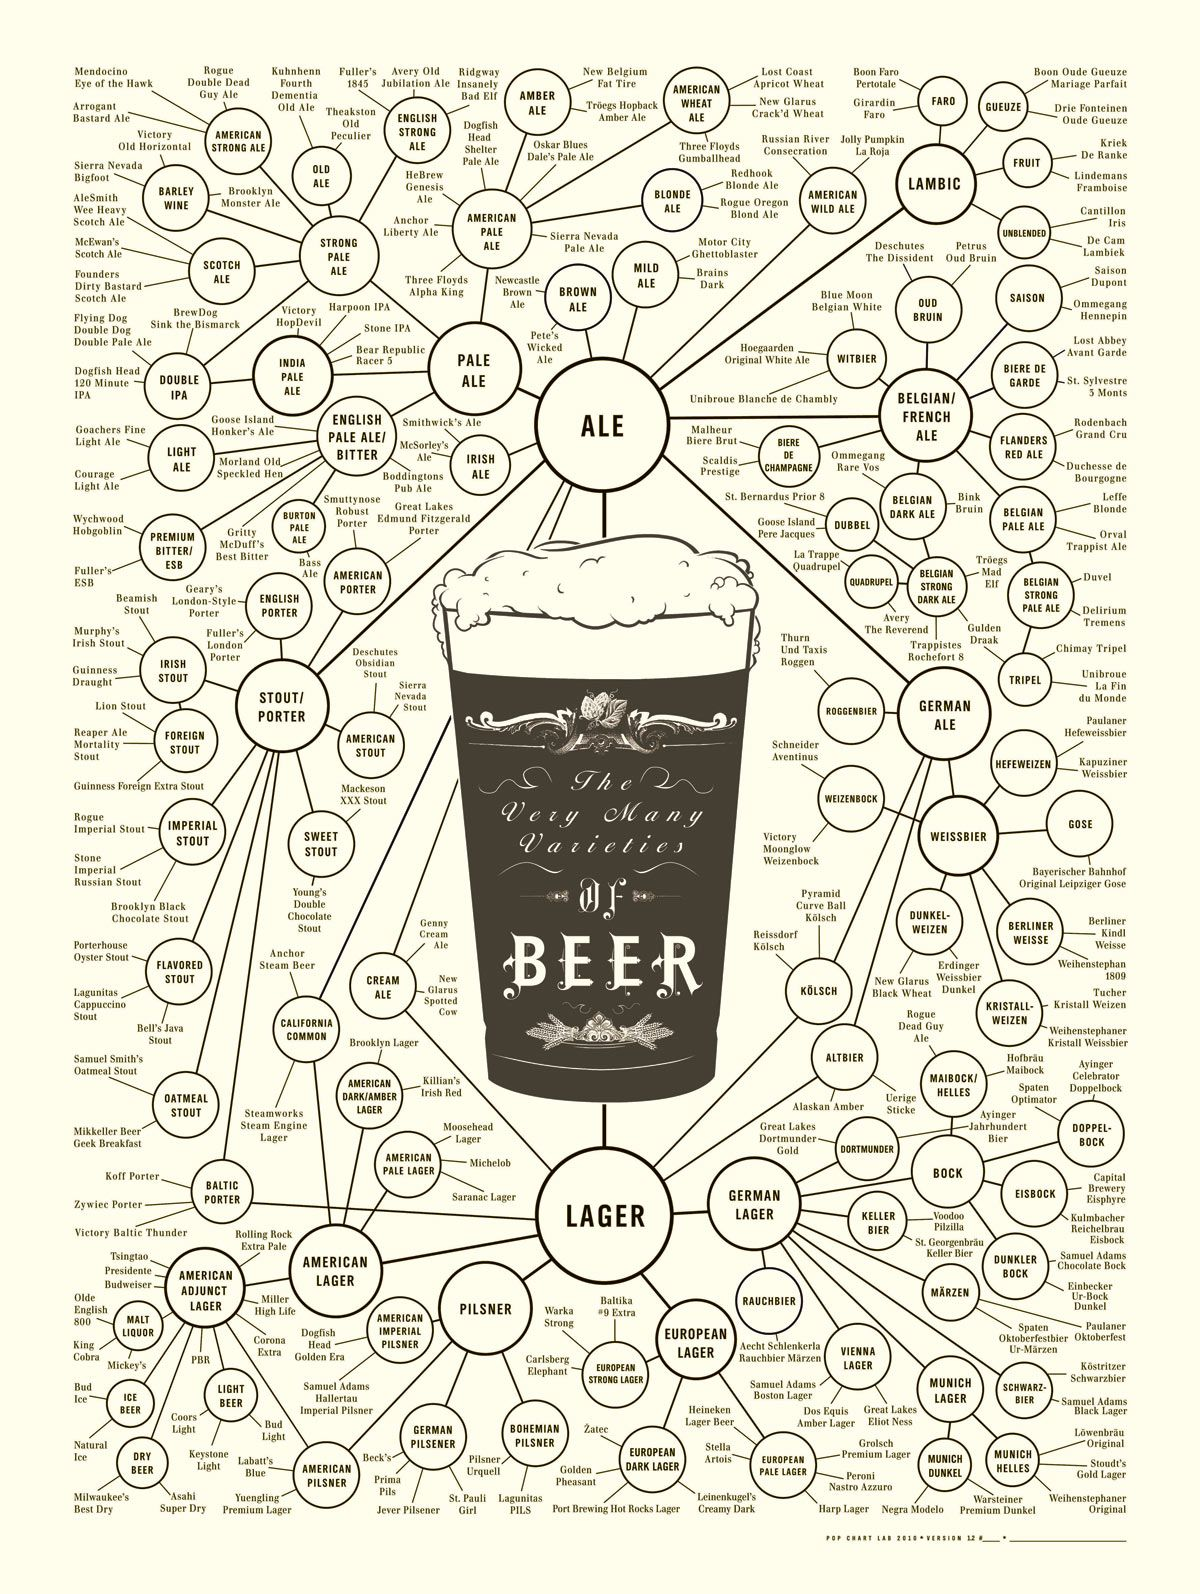 The Very Many Varieties of Beer. Project Info: Poster, 2010, USA  Design: Ben Gibson, Patrick Mulligan (Pop Chart Lab)    www.guardian.co.uk/news/datablog/2012/mar/16/infographics-data-visualisation-history?CMP=SOCNETIMG8759I